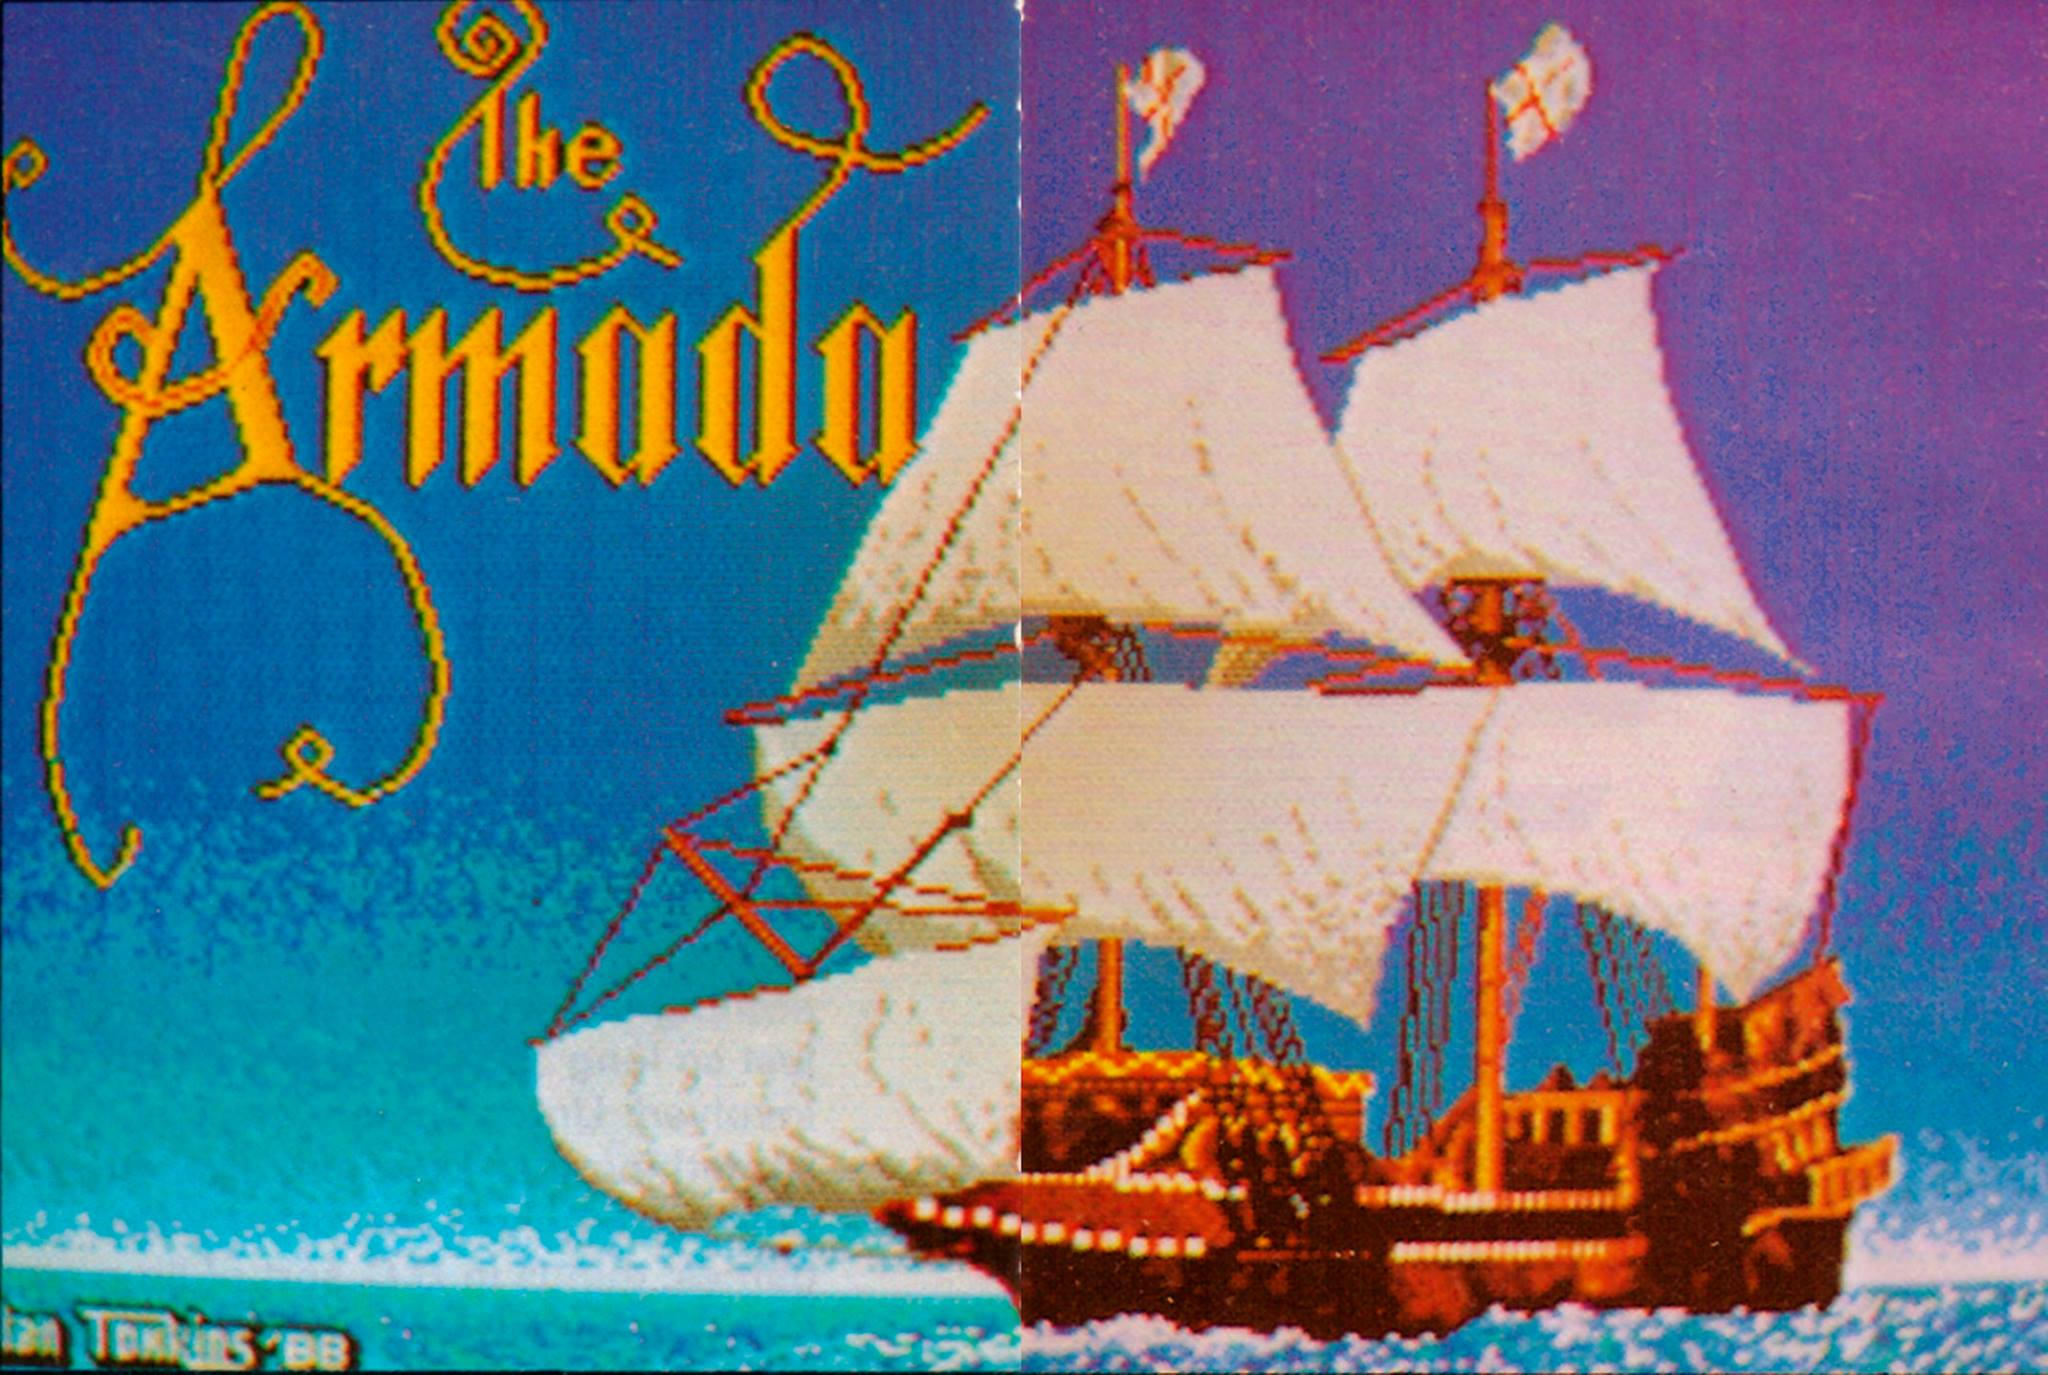 Armada was another unreleased game Alan worked on during the 80s